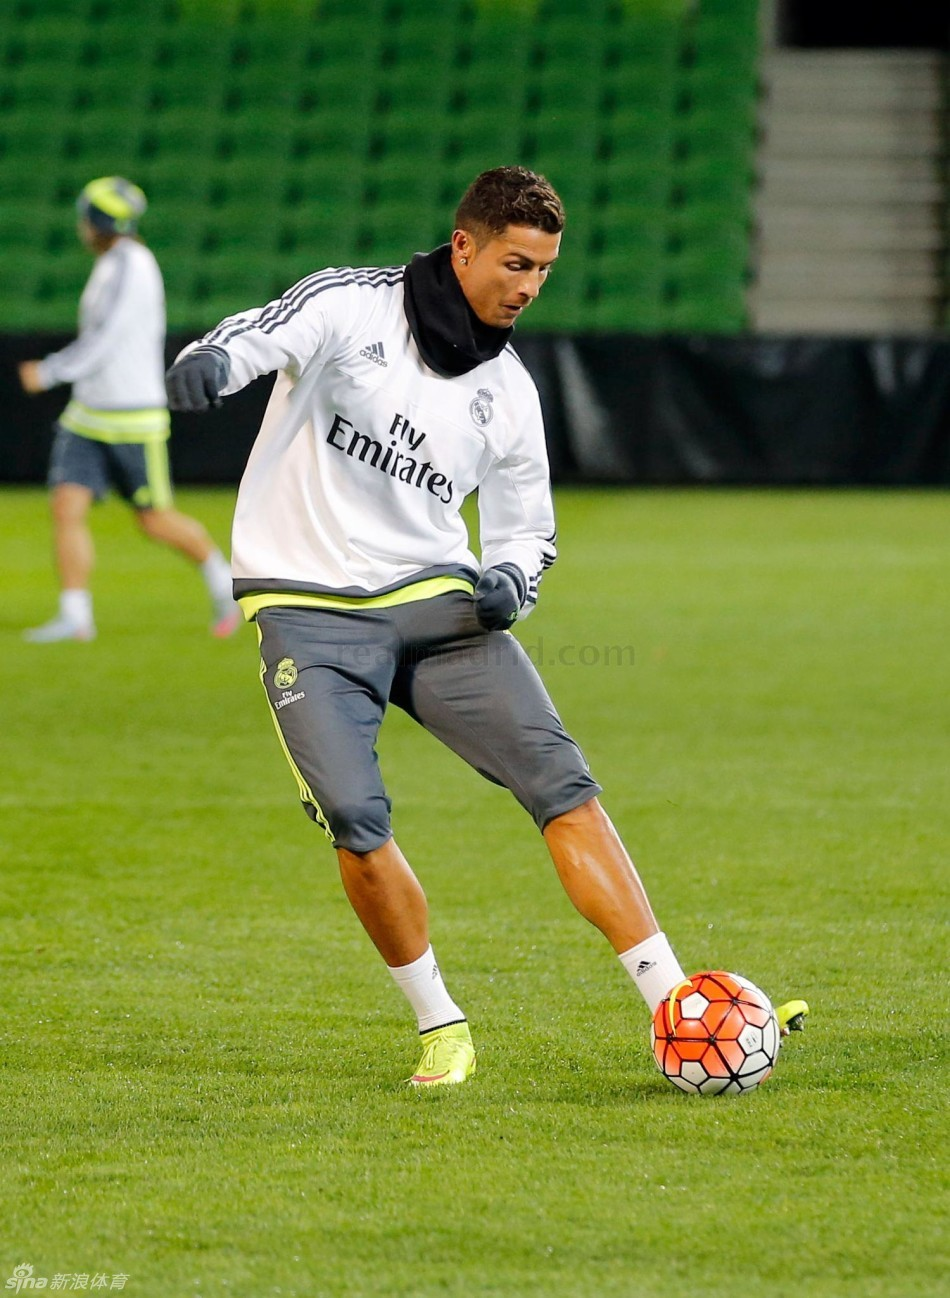 Real Madrid training to prepare for Manchester City